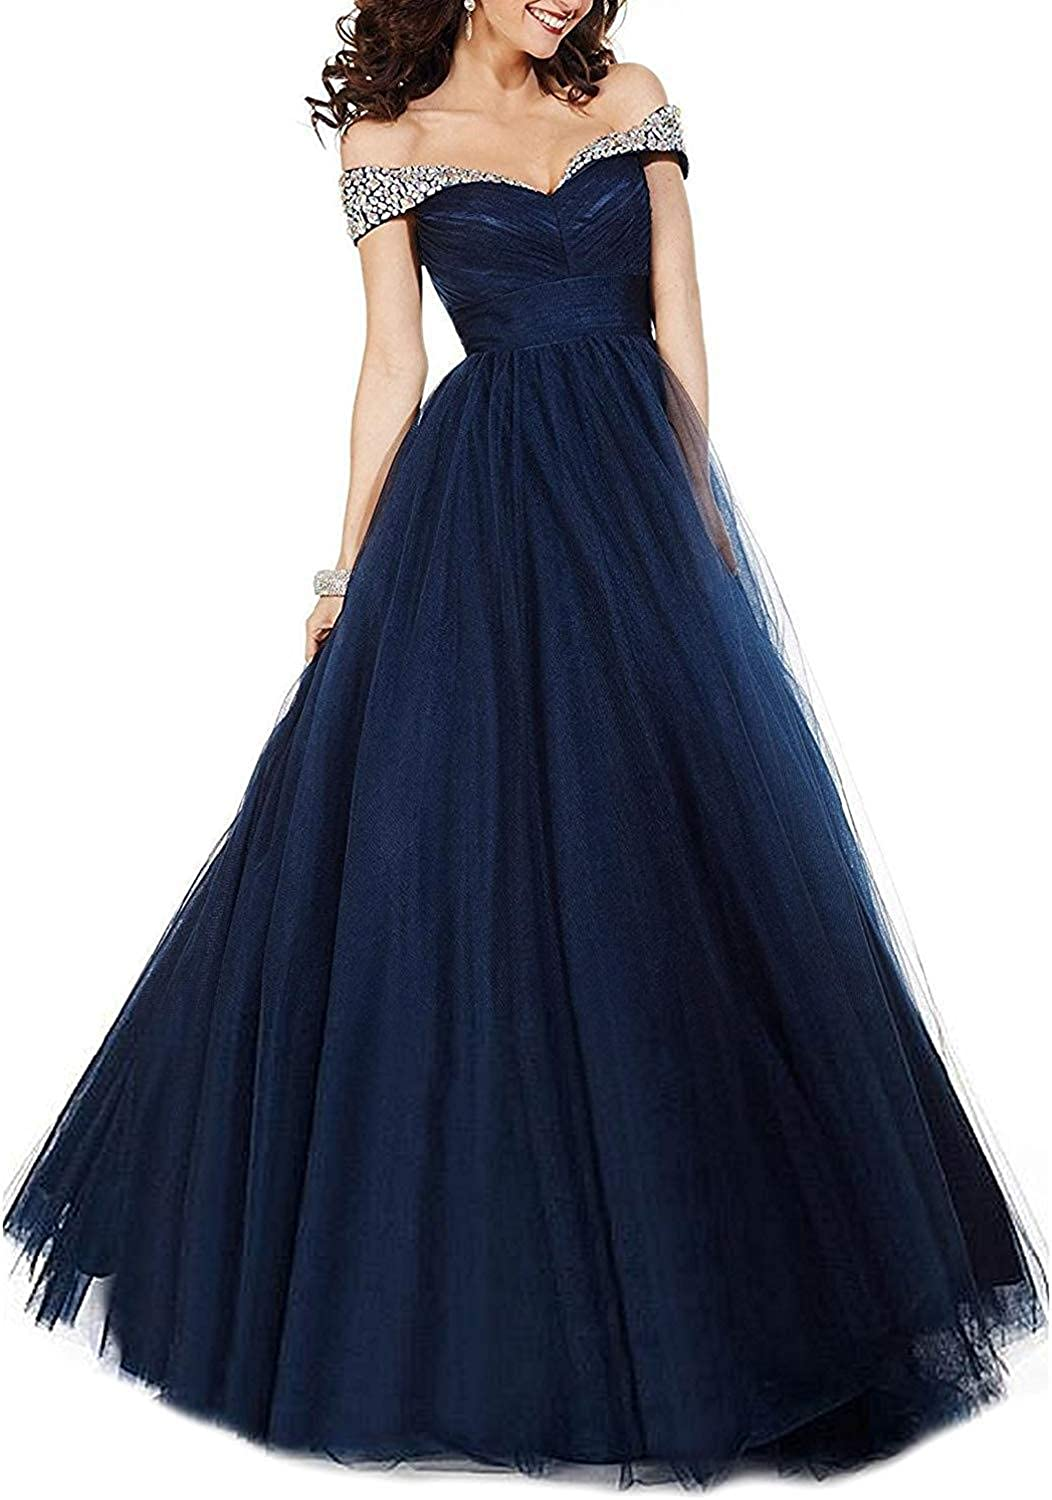 EverBeauty Off The Shoulder Tulle Prom Dress 2019 Long Beaded Aline Evening Formal Ball Gown